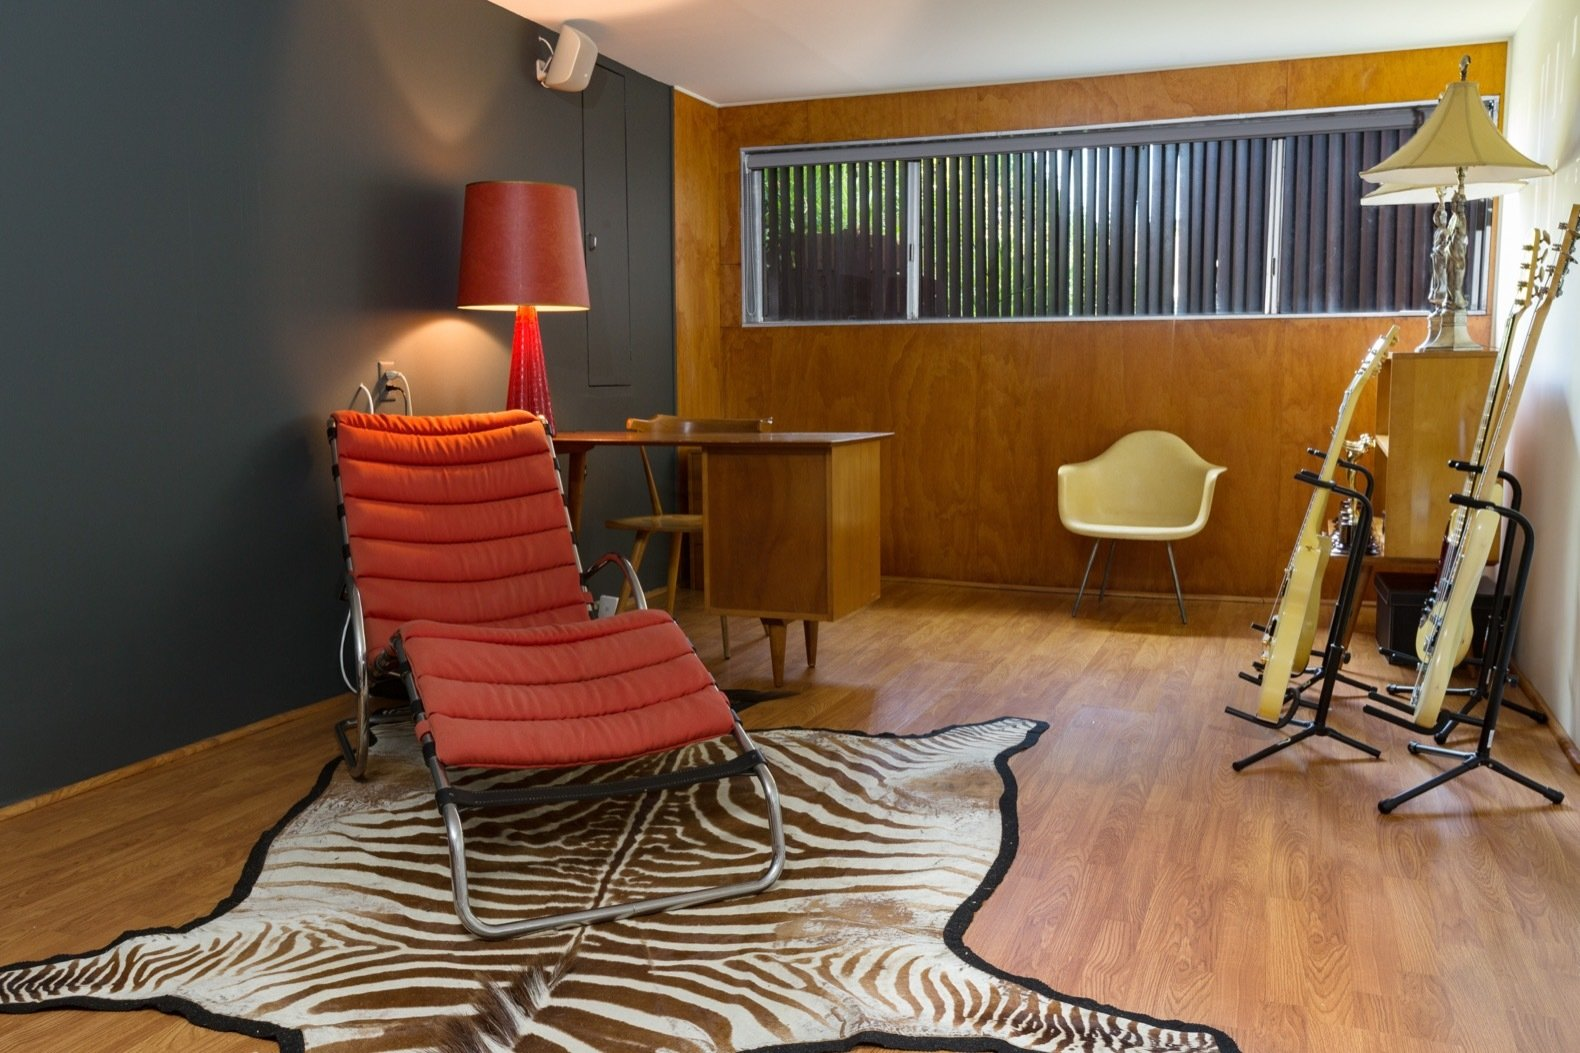 Office, Lamps, Study Room Type, Desk, Medium Hardwood Floor, Chair, and Rug Floor Hardwood floors line the studio.  Photo 13 of 15 in Calling All Richard Neutra Fans—His Bonnet House in L.A. Hits the Market at $1.8M